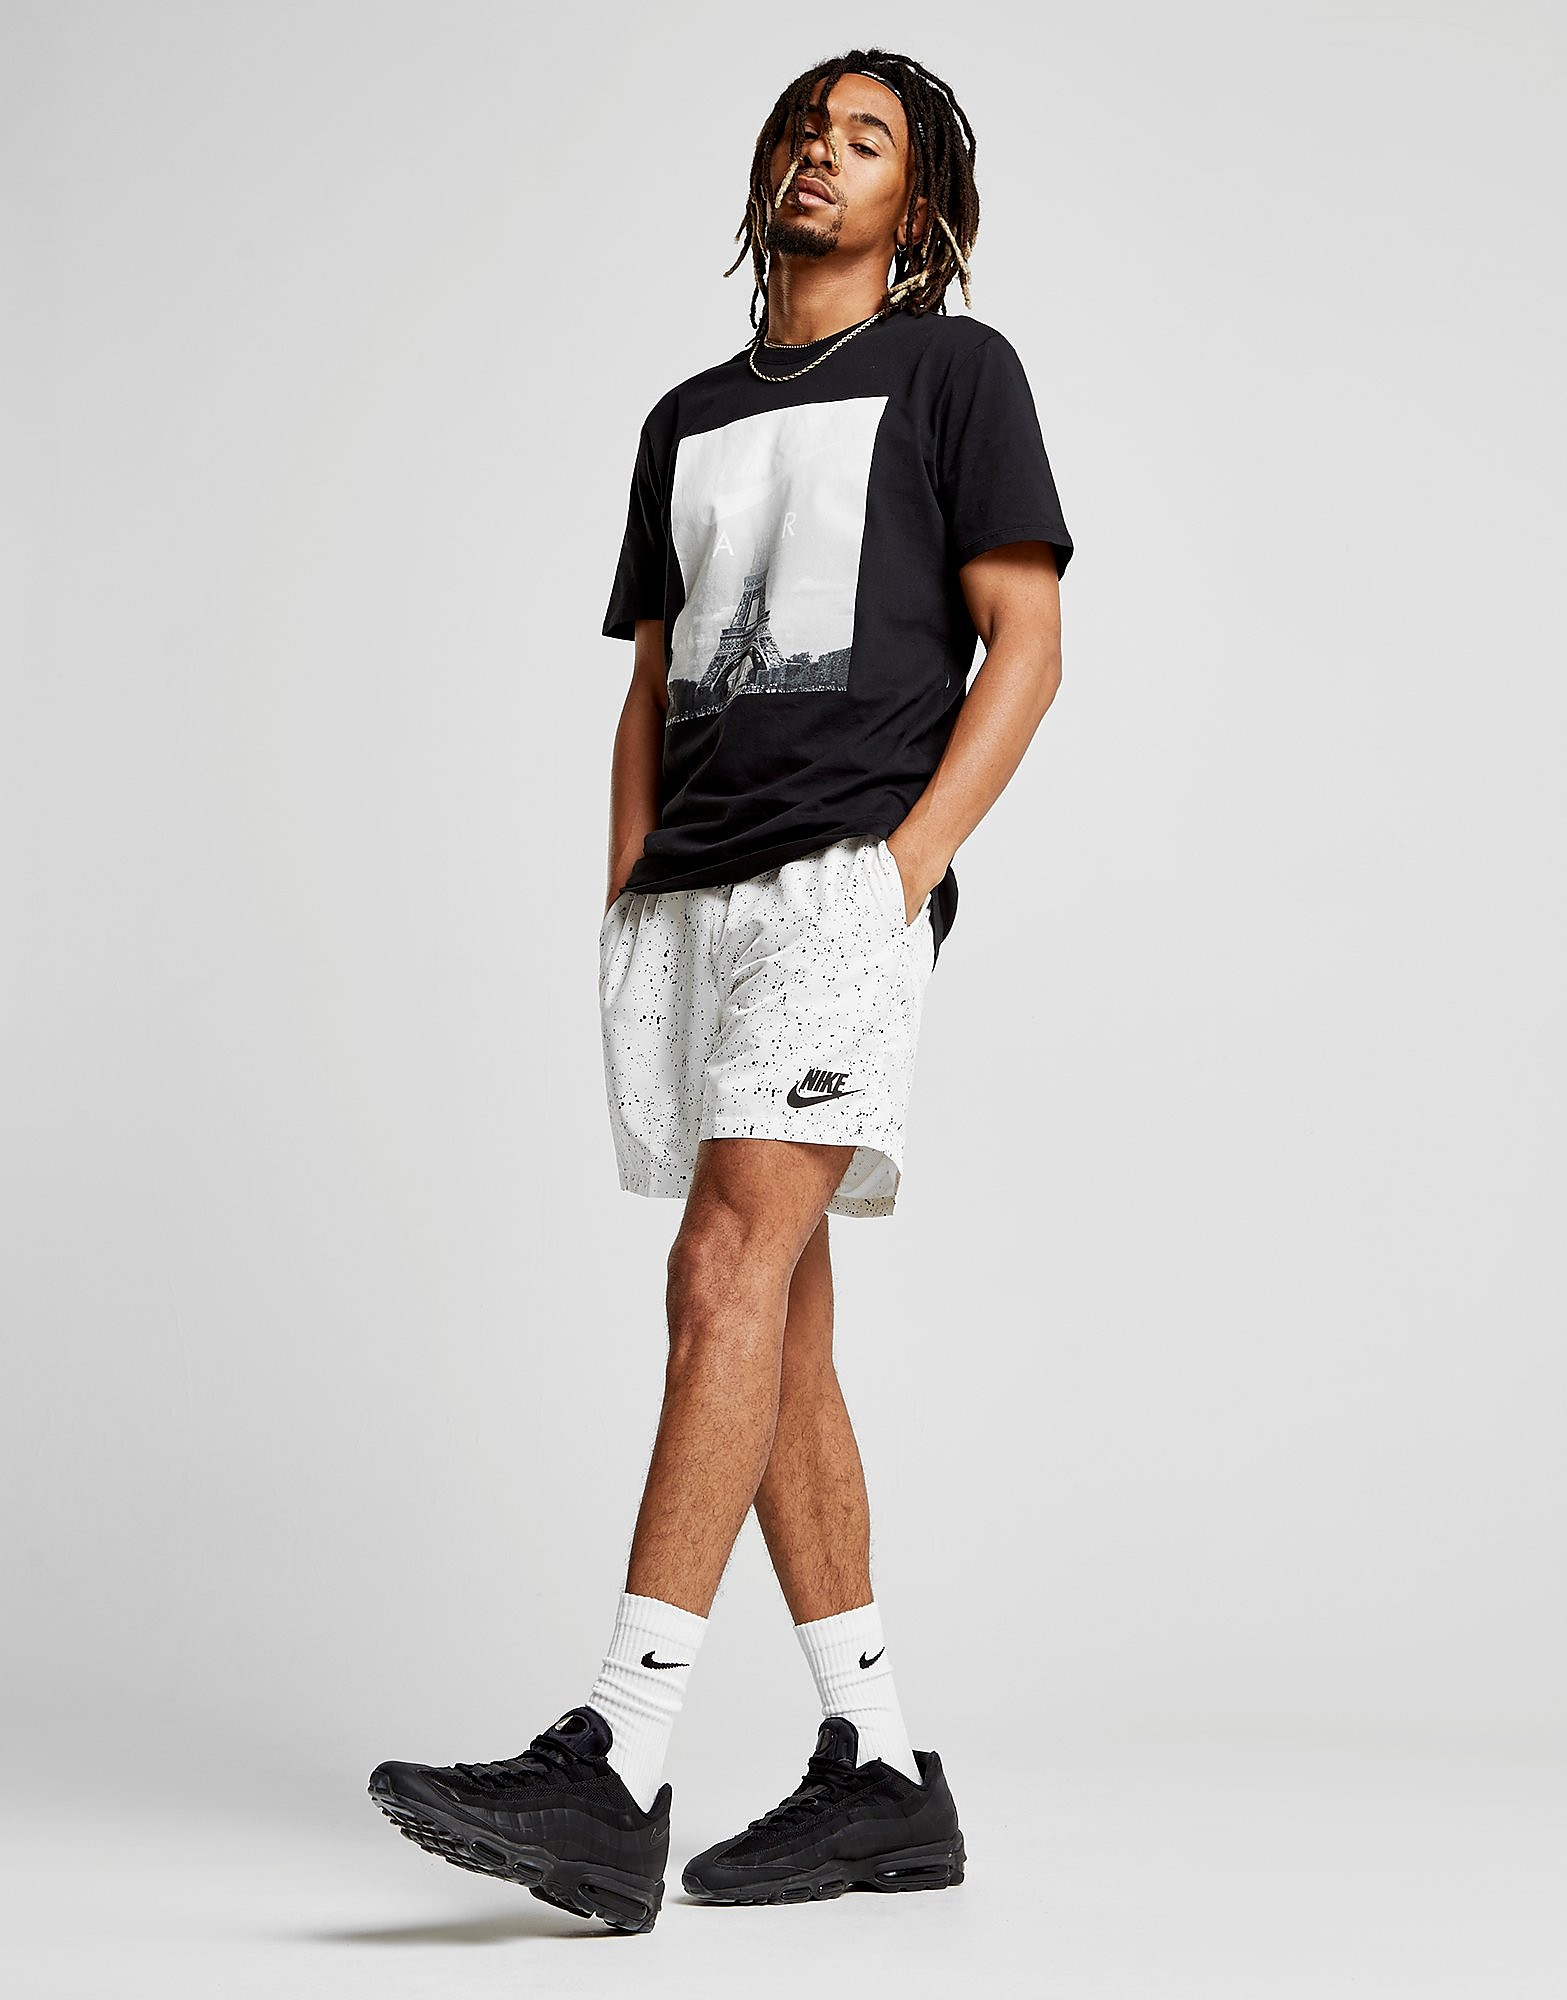 Nike Flow All Over Print Shorts - Weiss - Mens, Weiss